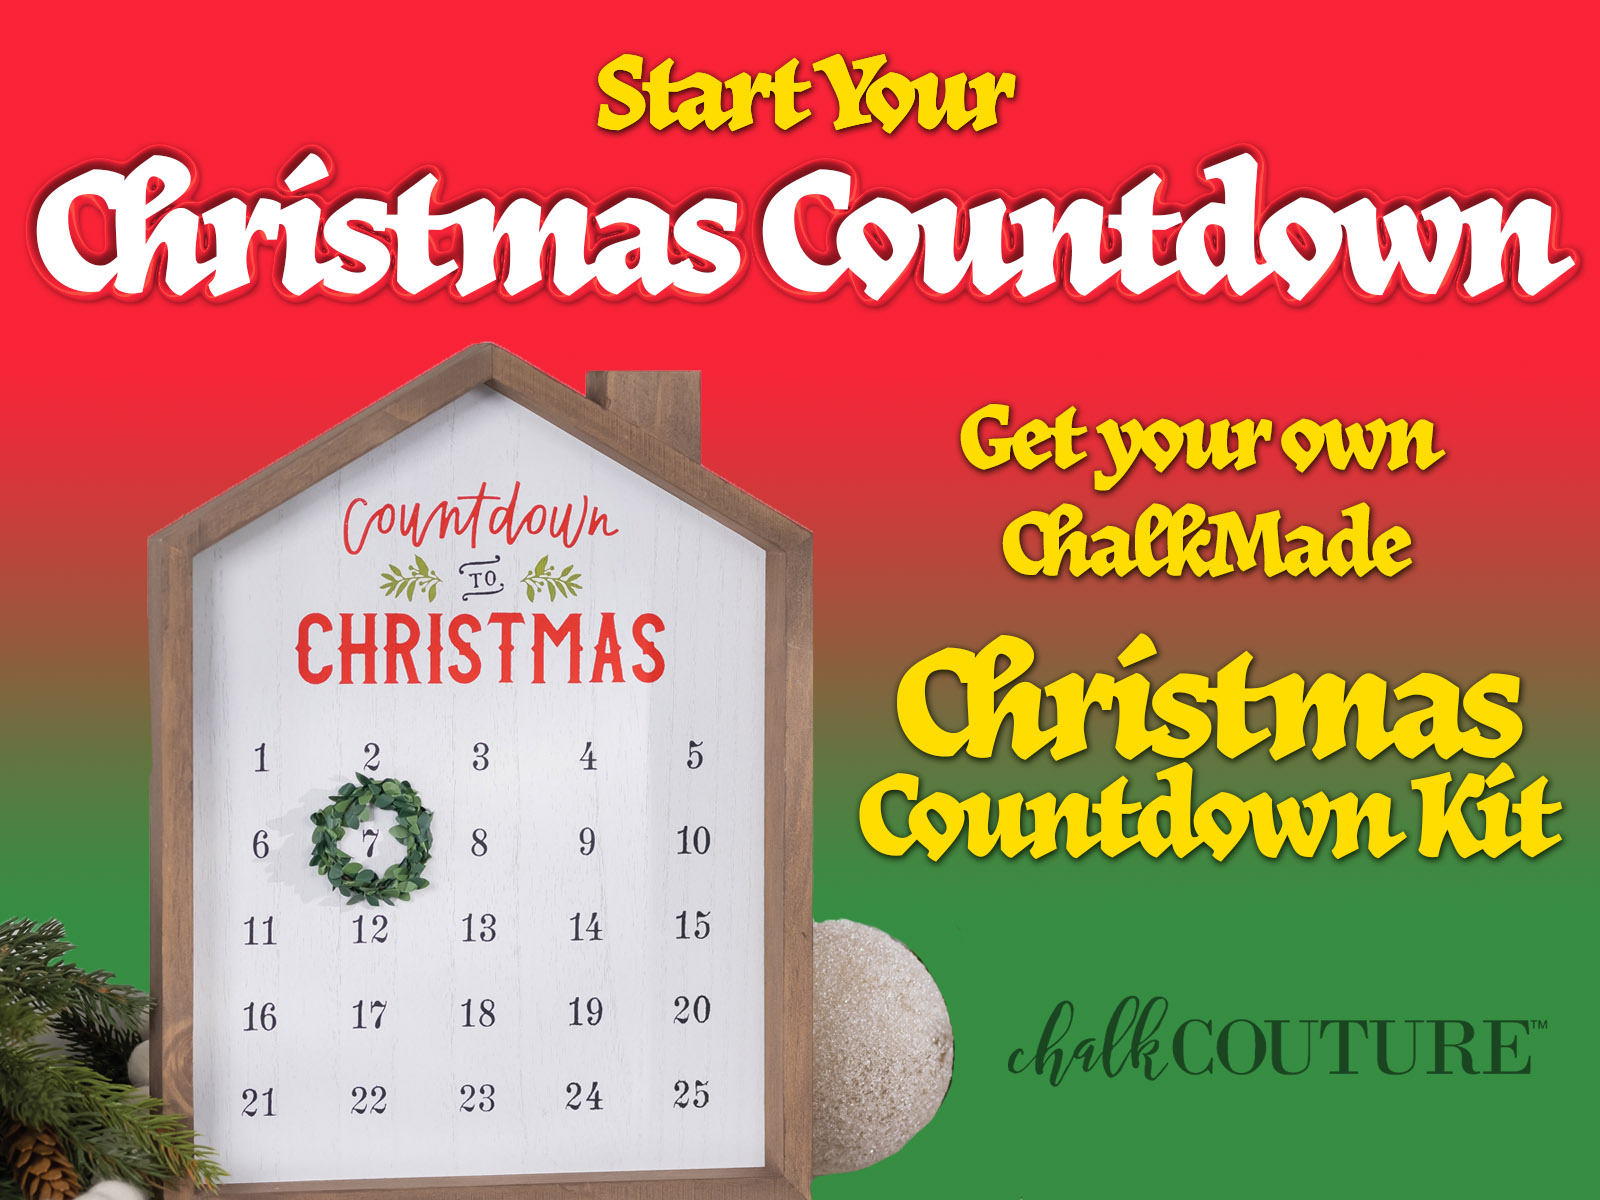 Get Ready for Christmas with the ChalkMade Christmas Countdown Kit!